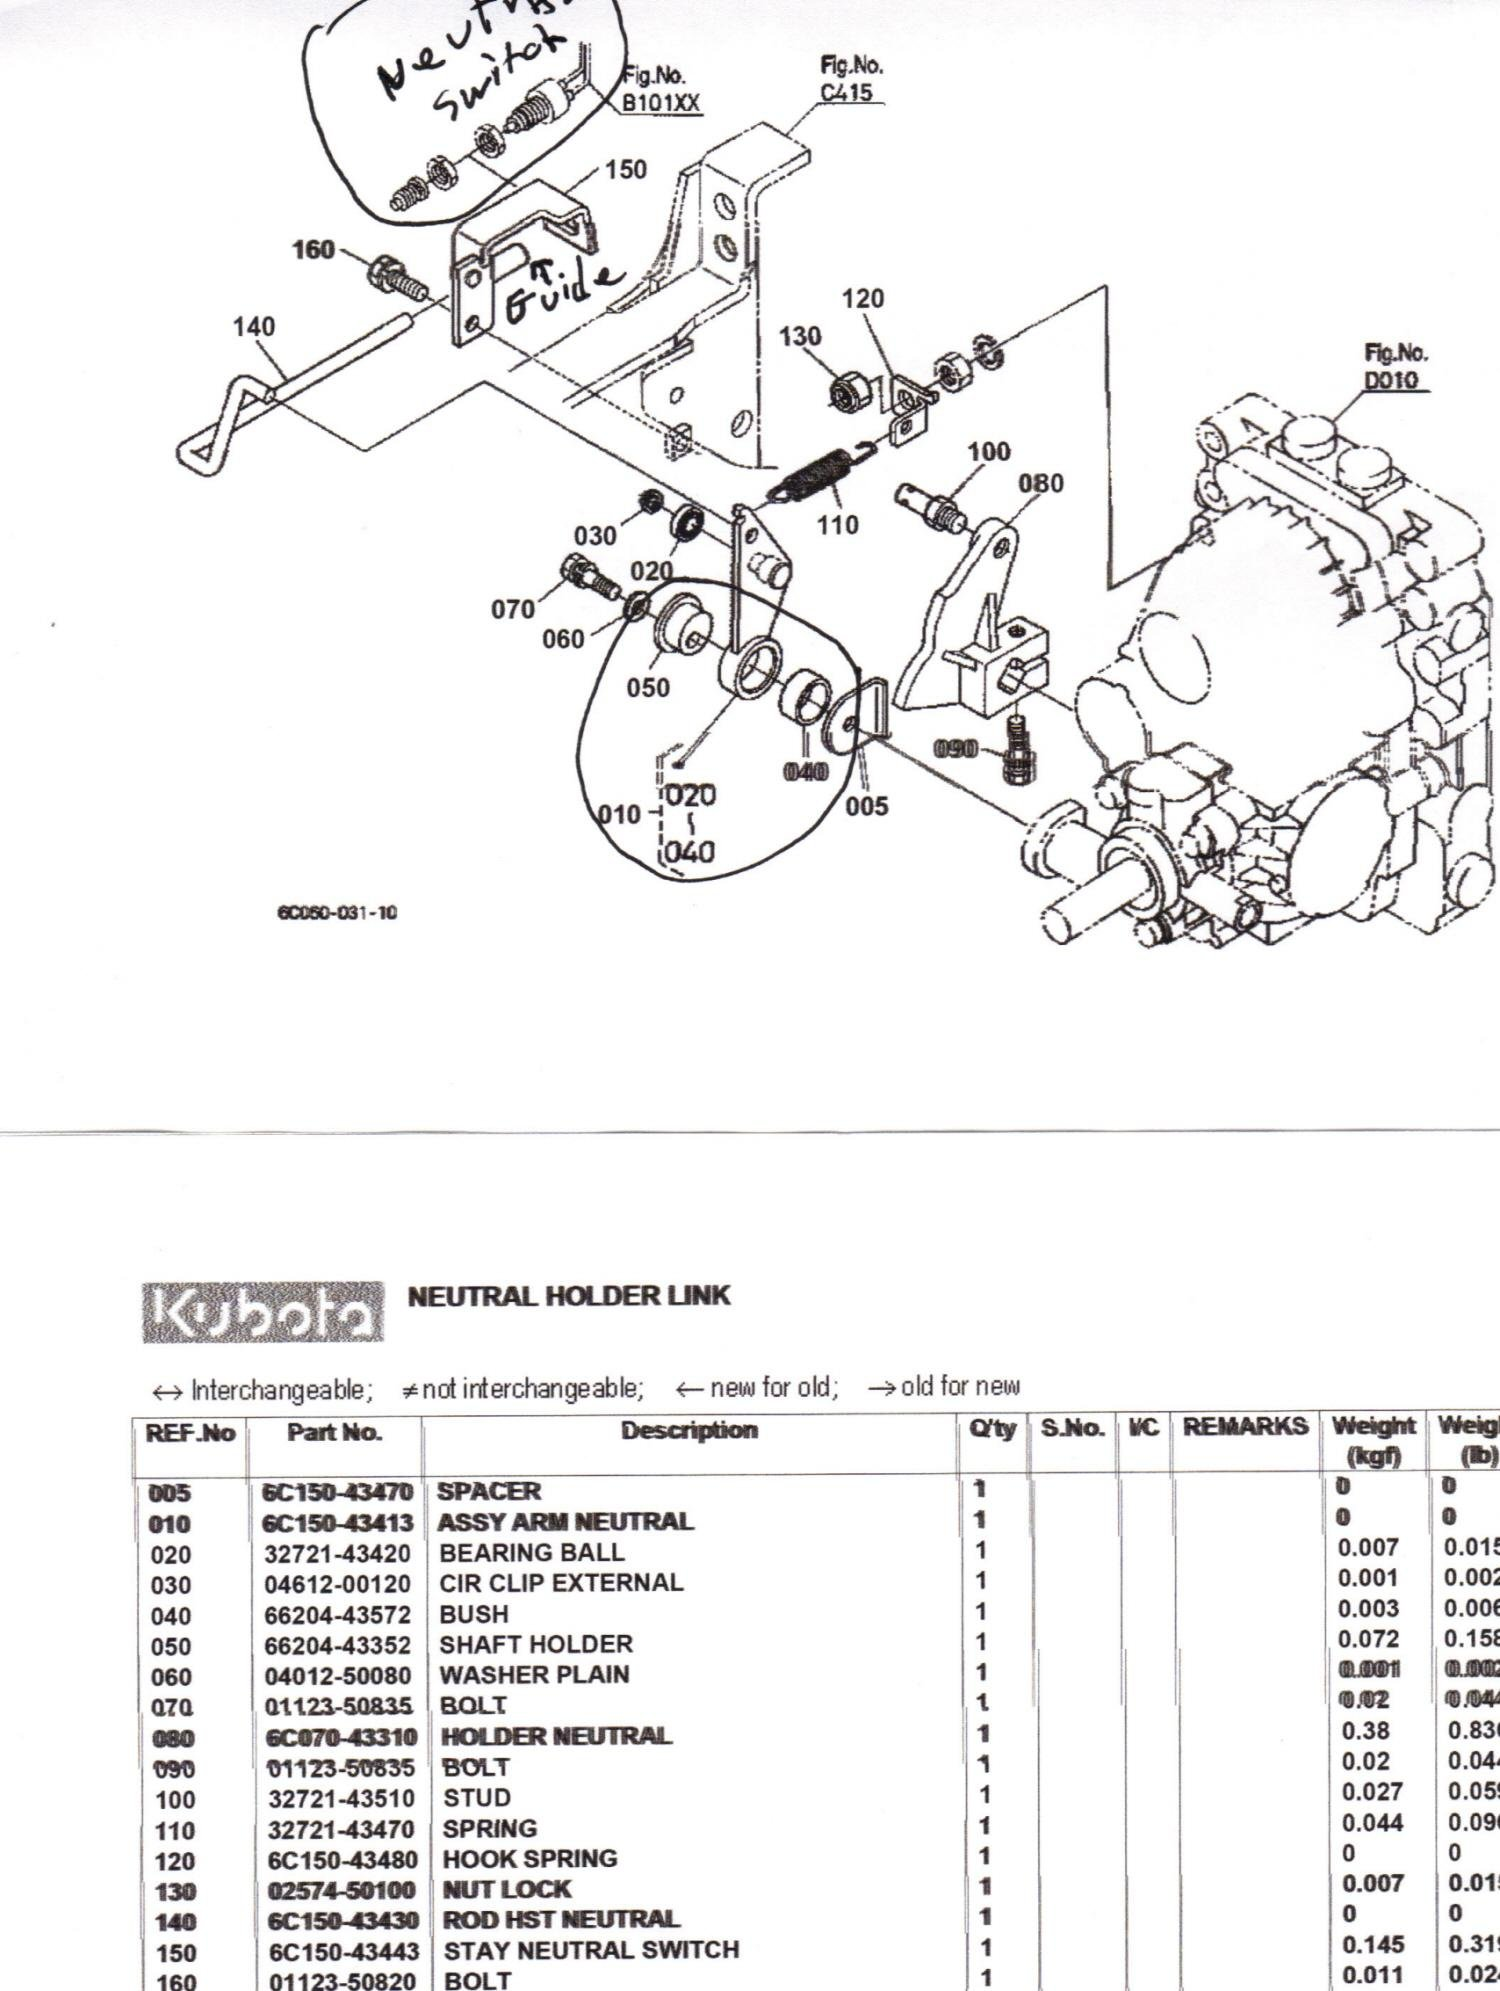 4a8gc Kubota B7500 Hst 4wd Tractor Speed Direction Pedal Sticky on b26 kubota parts diagram